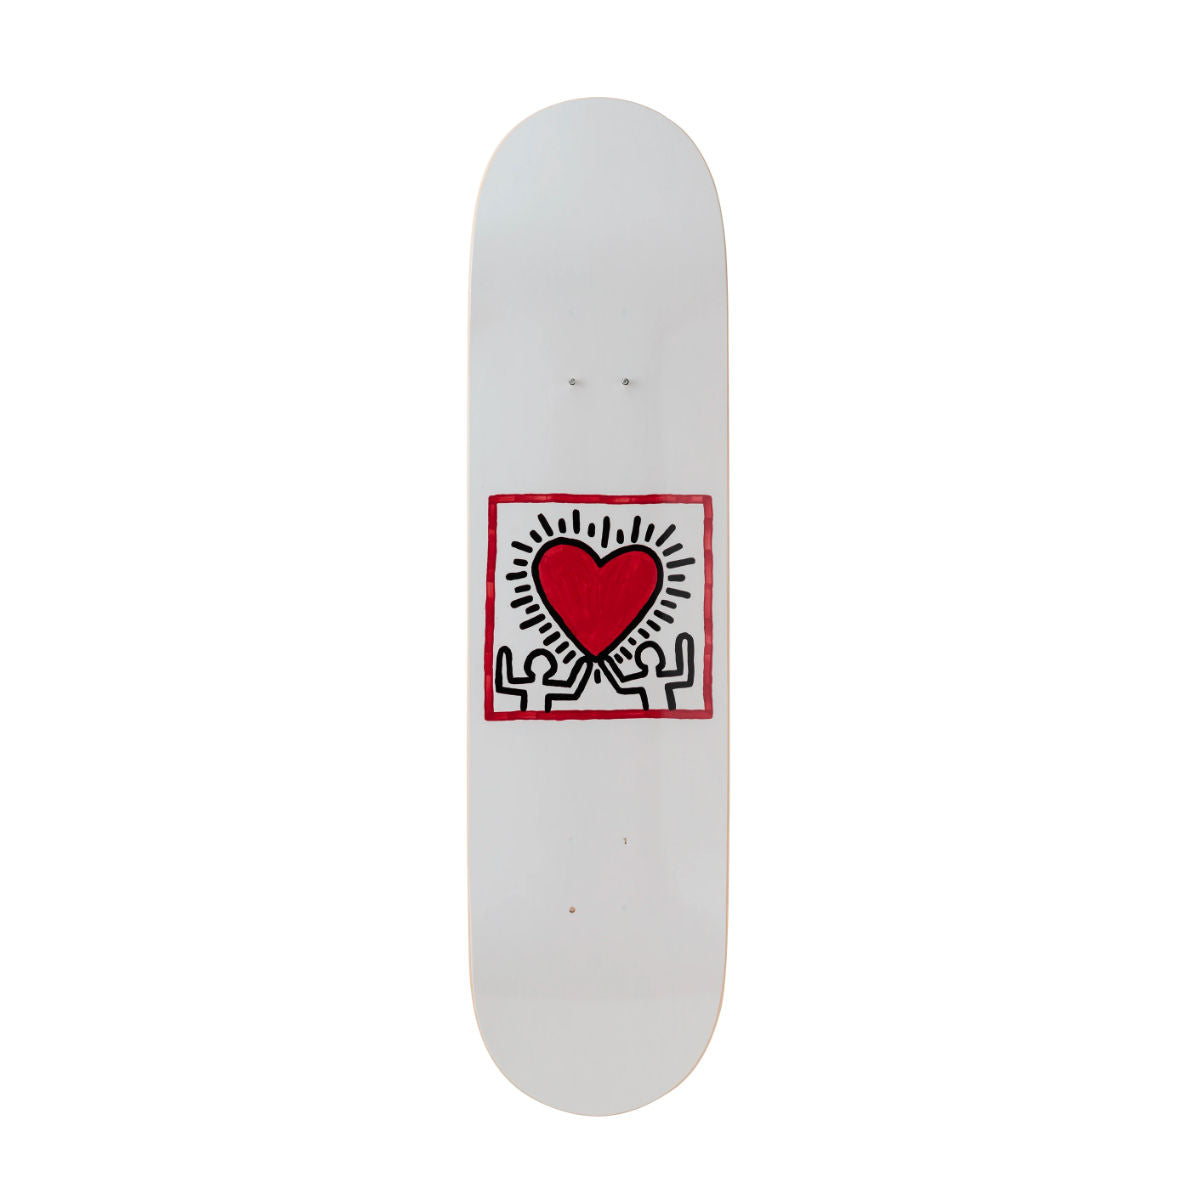 The Skateroom skateboard, Keith Haring Untitled (Heart)